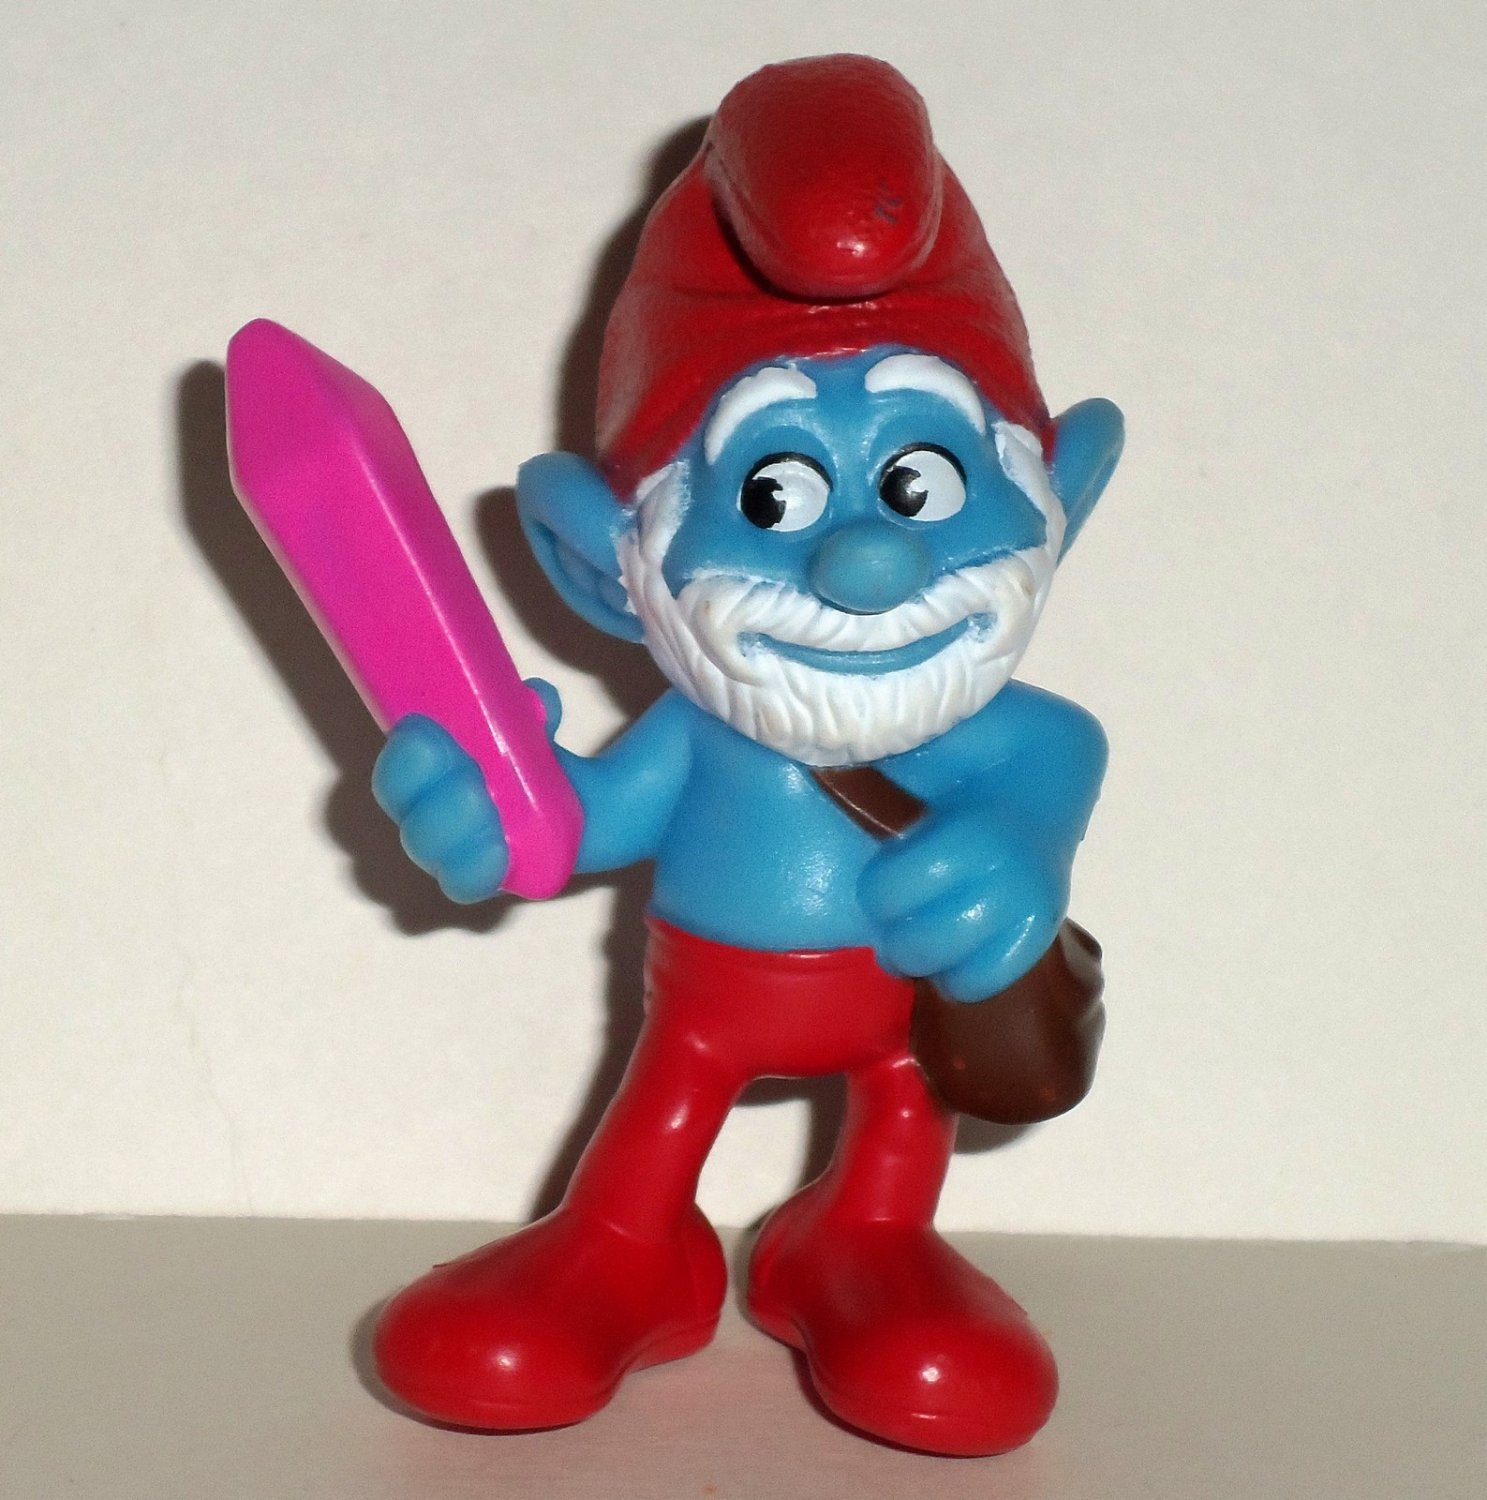 Mcdonald S Happy Meal Toys 2013 : Mcdonald s smurfs papa crystal pvc figure happy